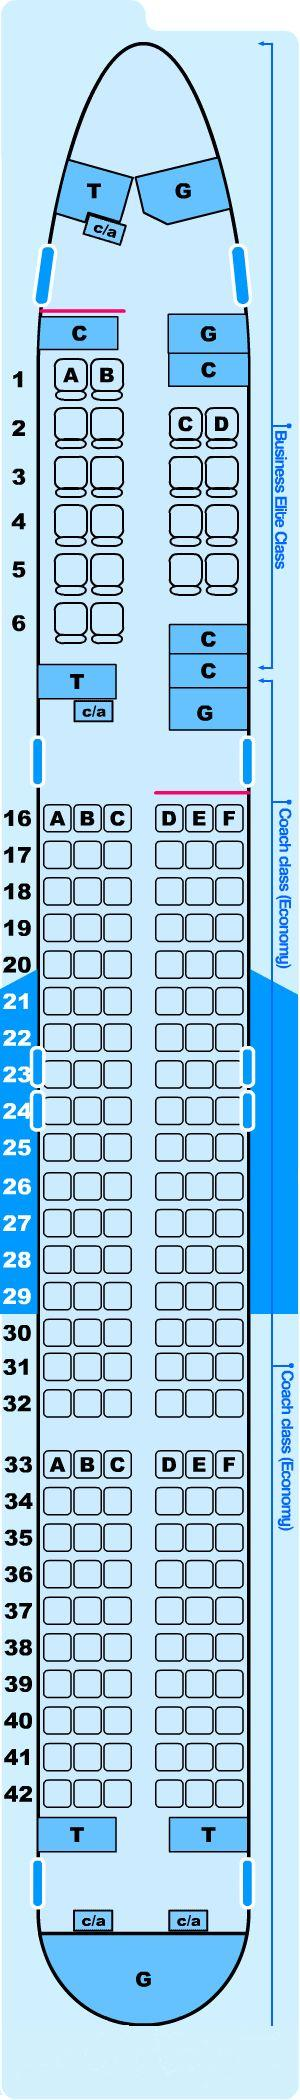 Seat map for Northwest Airlines Boeing B757 200 (5600) Pacific